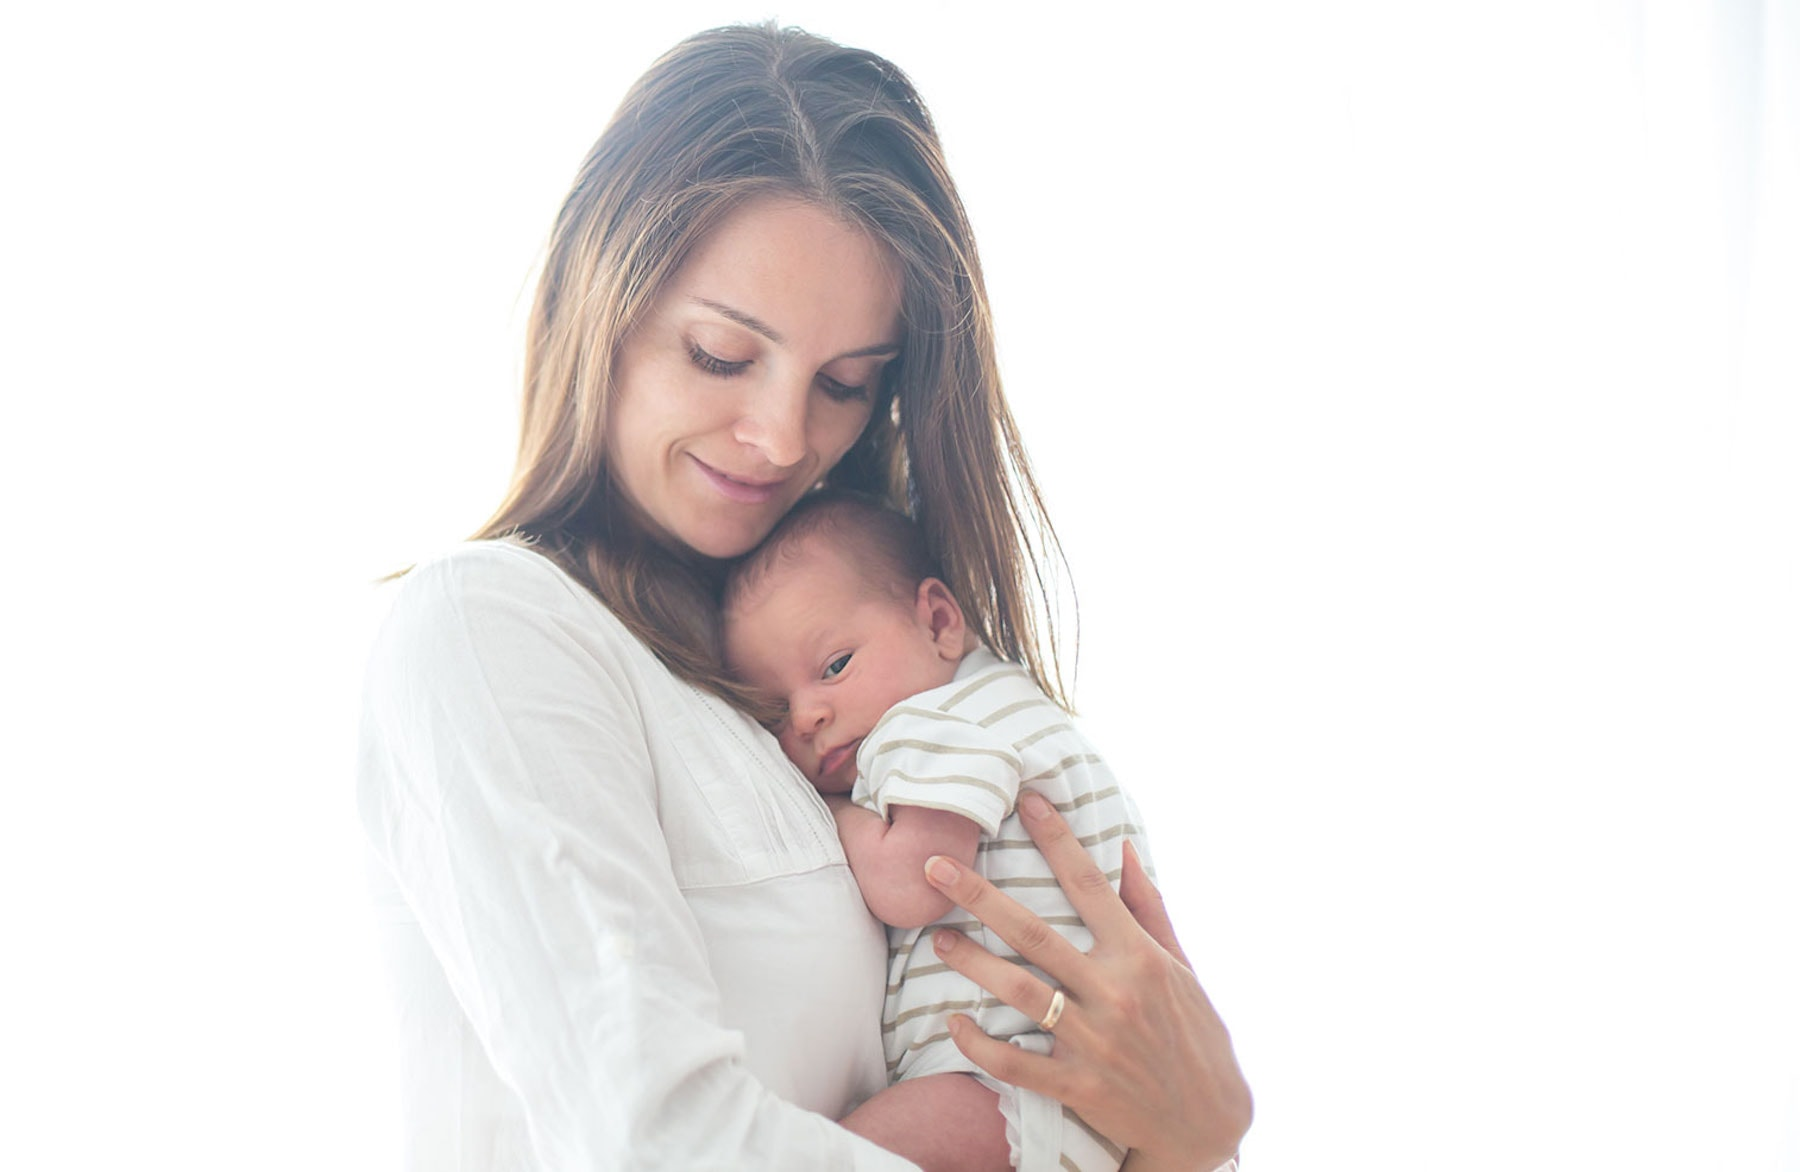 Being mother is something I had always wanted about and thought I would take to naturally. But when I became a mother, I had to give up more than I expected. These are just some of the things I gave up when I became a mother.